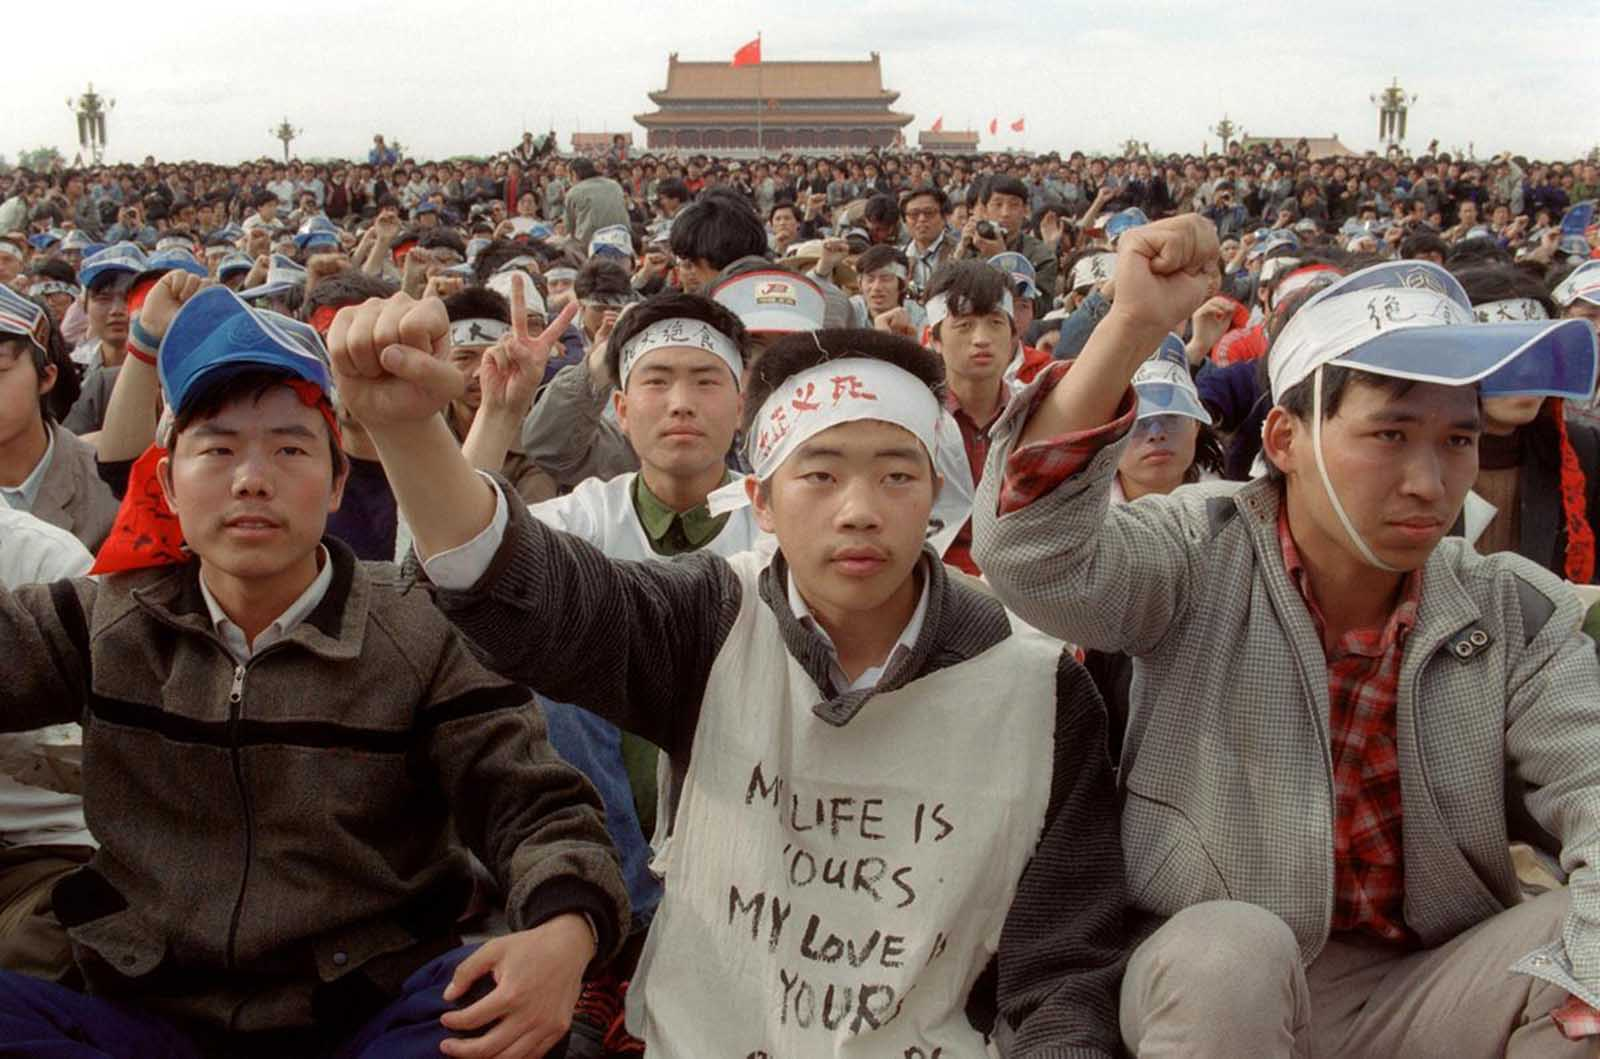 Students from Beijing University stage a huge demonstration in Tiananmen Square as they start an unlimited hunger strike as the part of mass pro-democracy protest against the Chinese government, on May 18, 1989.